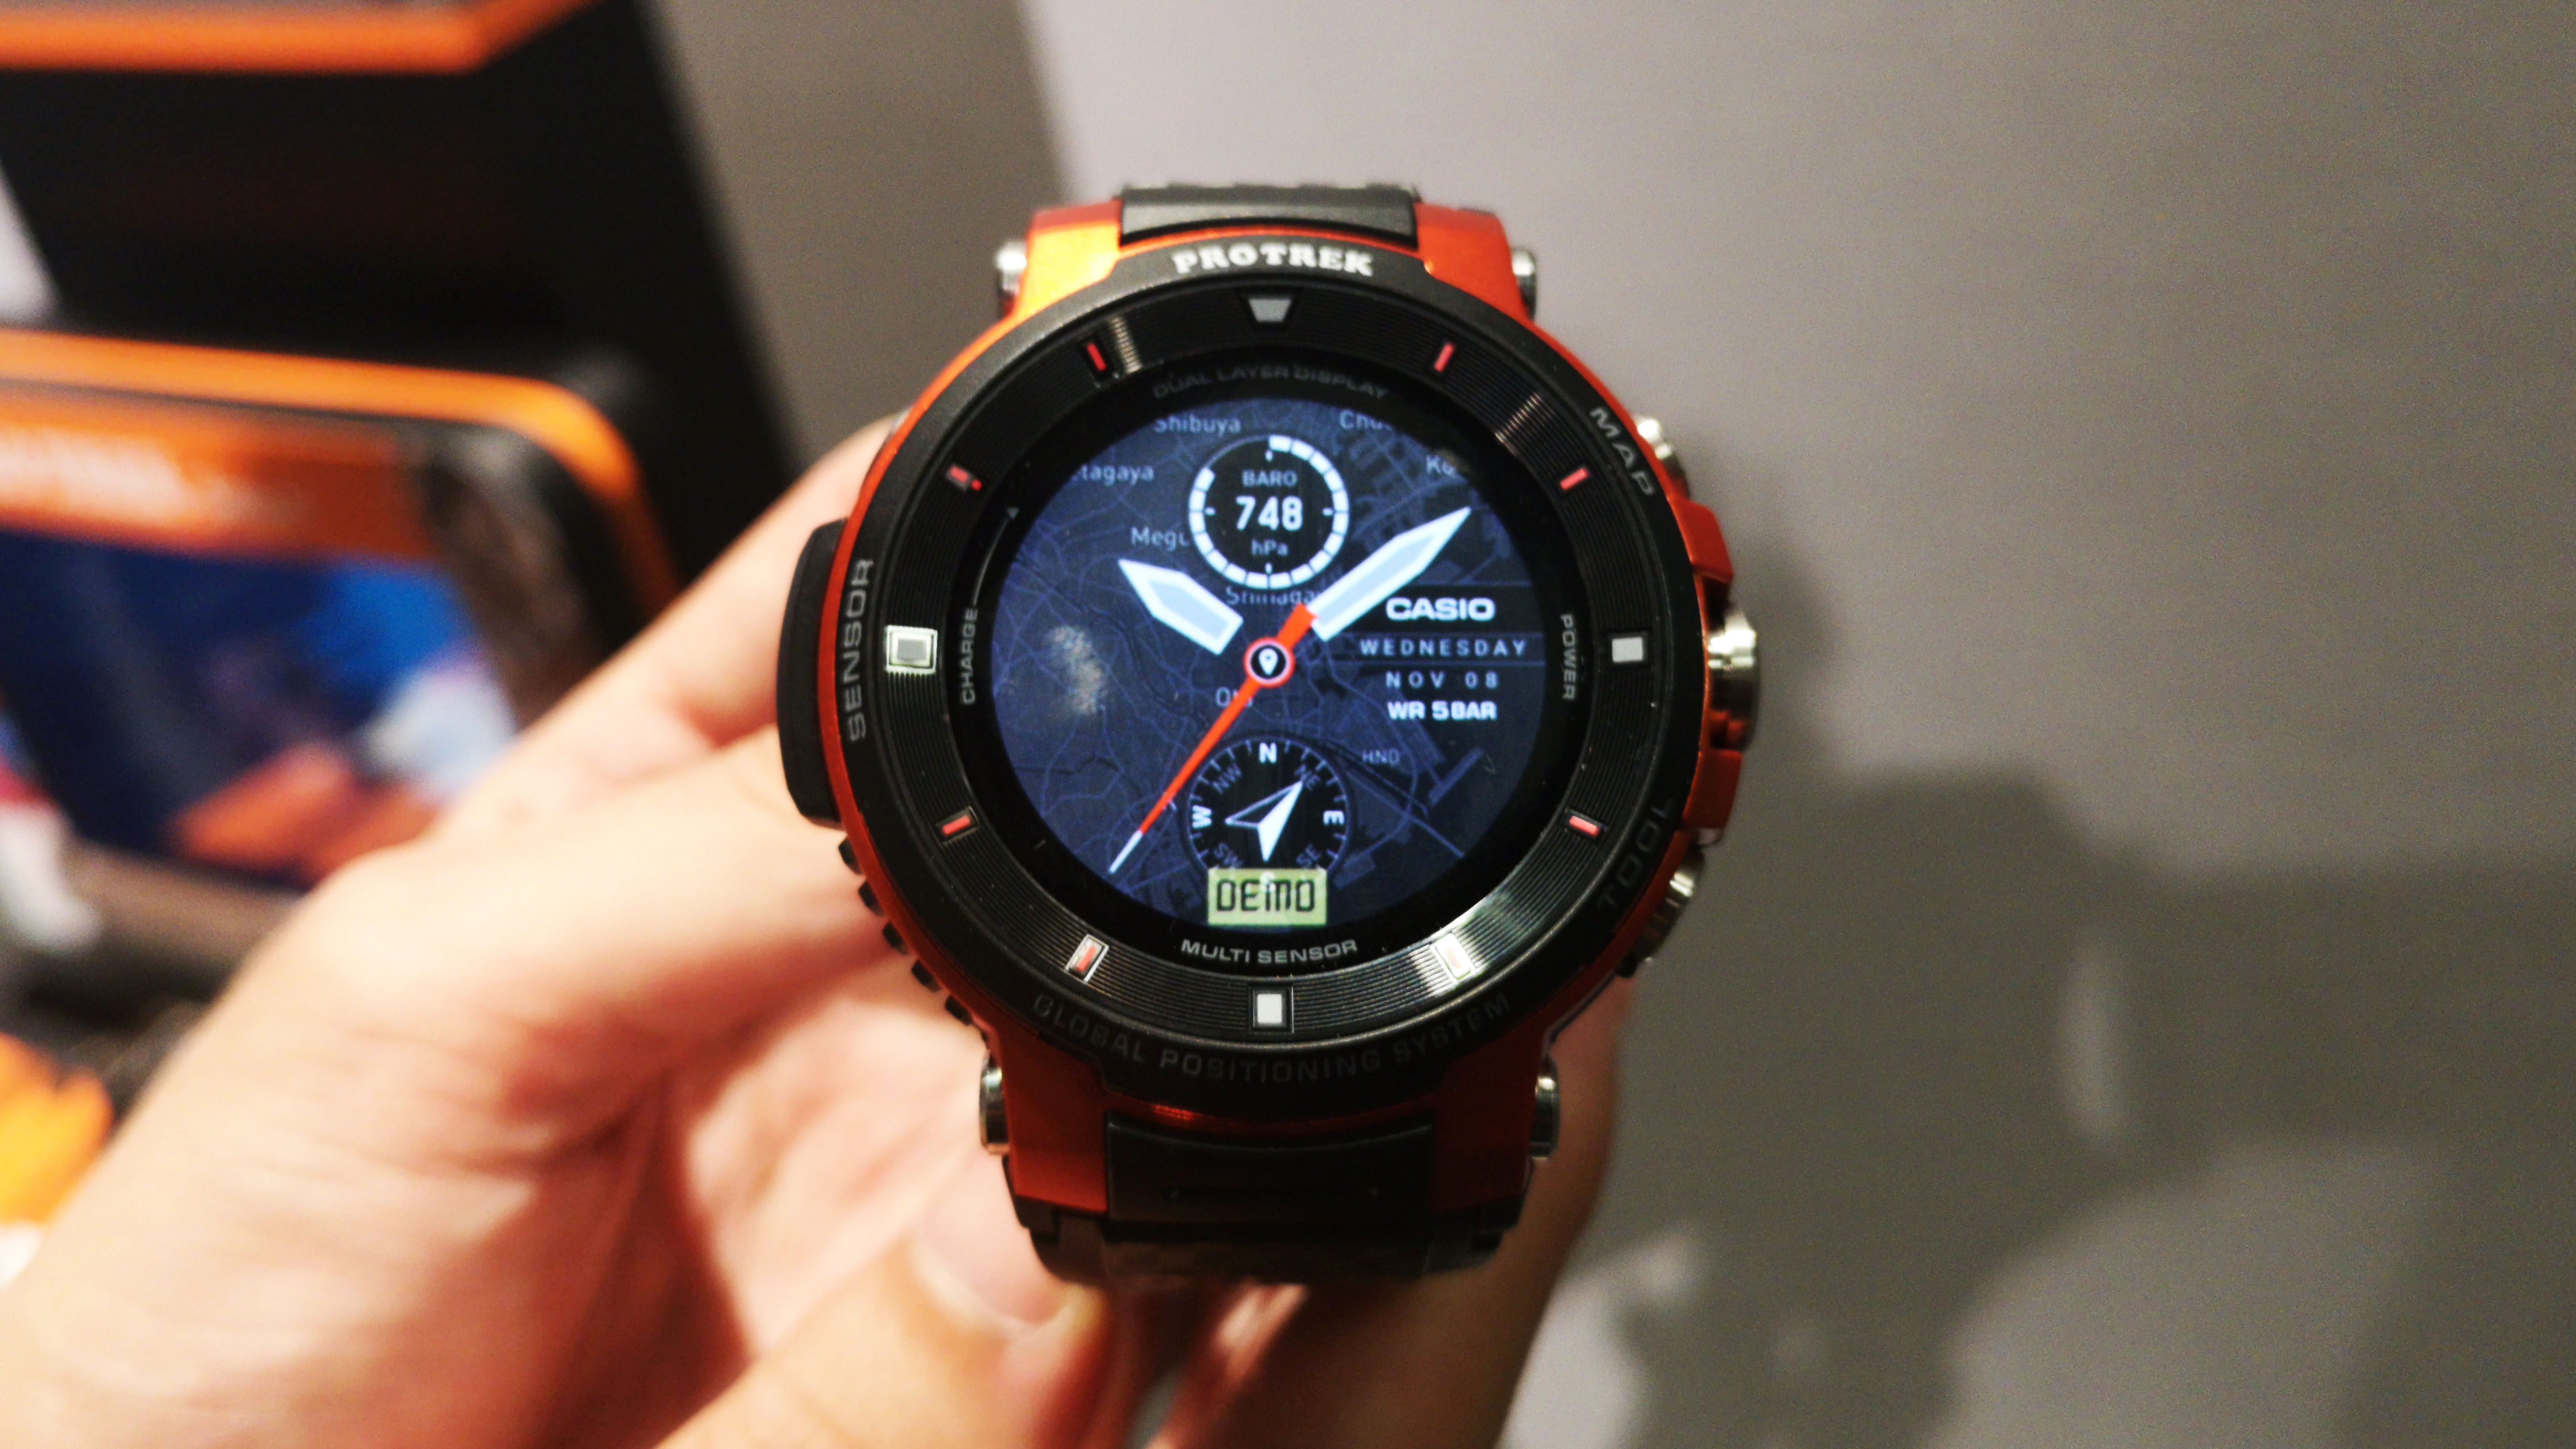 Casio's rugged new smartwatch is ready for adventure